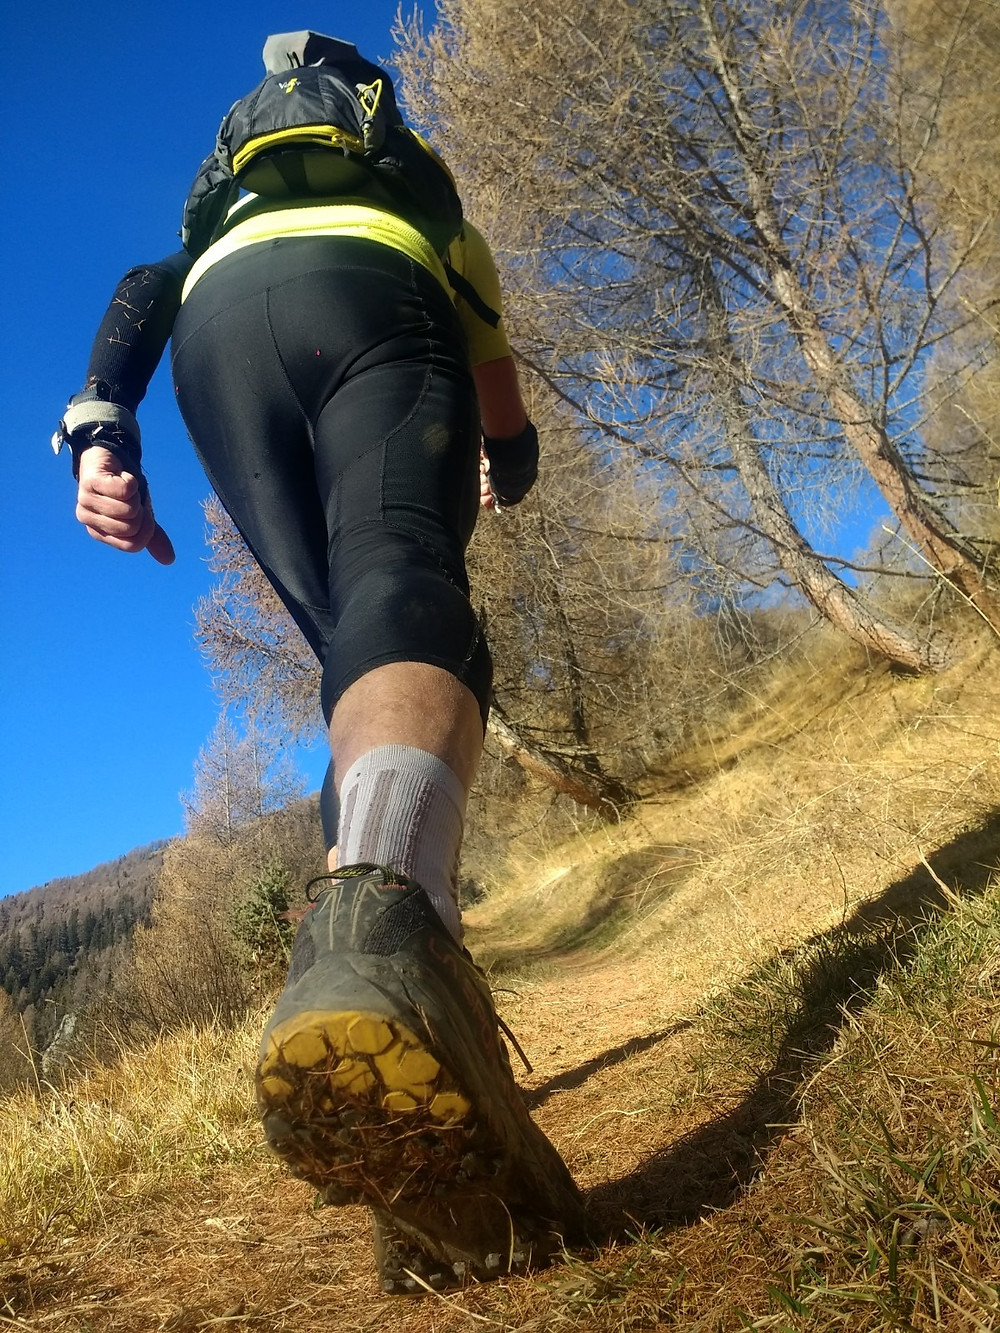 La Sportiva Akyra in action on the trails